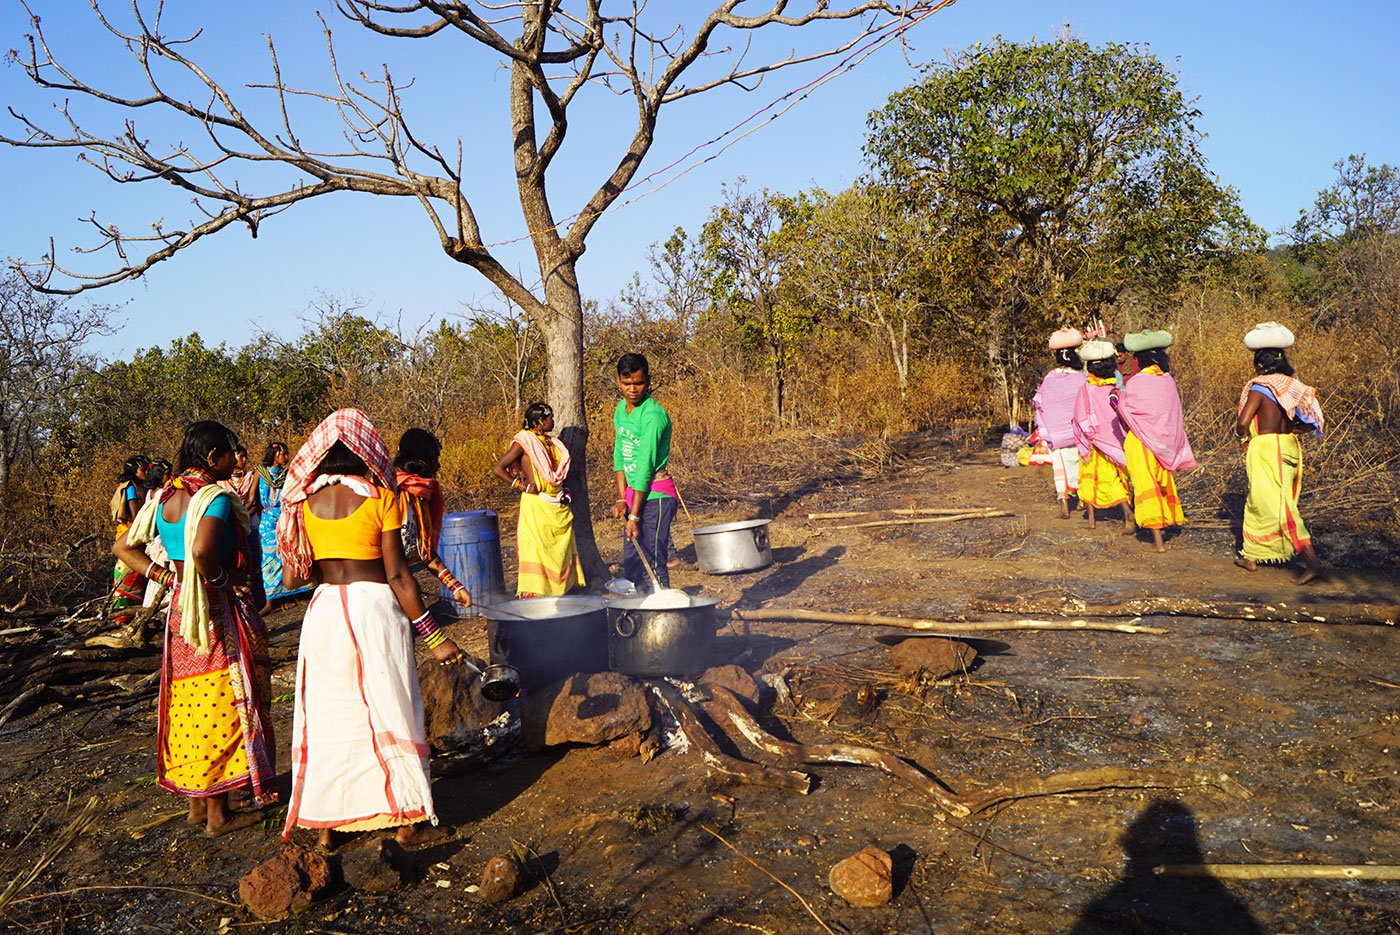 Tribal women cooking in an open field